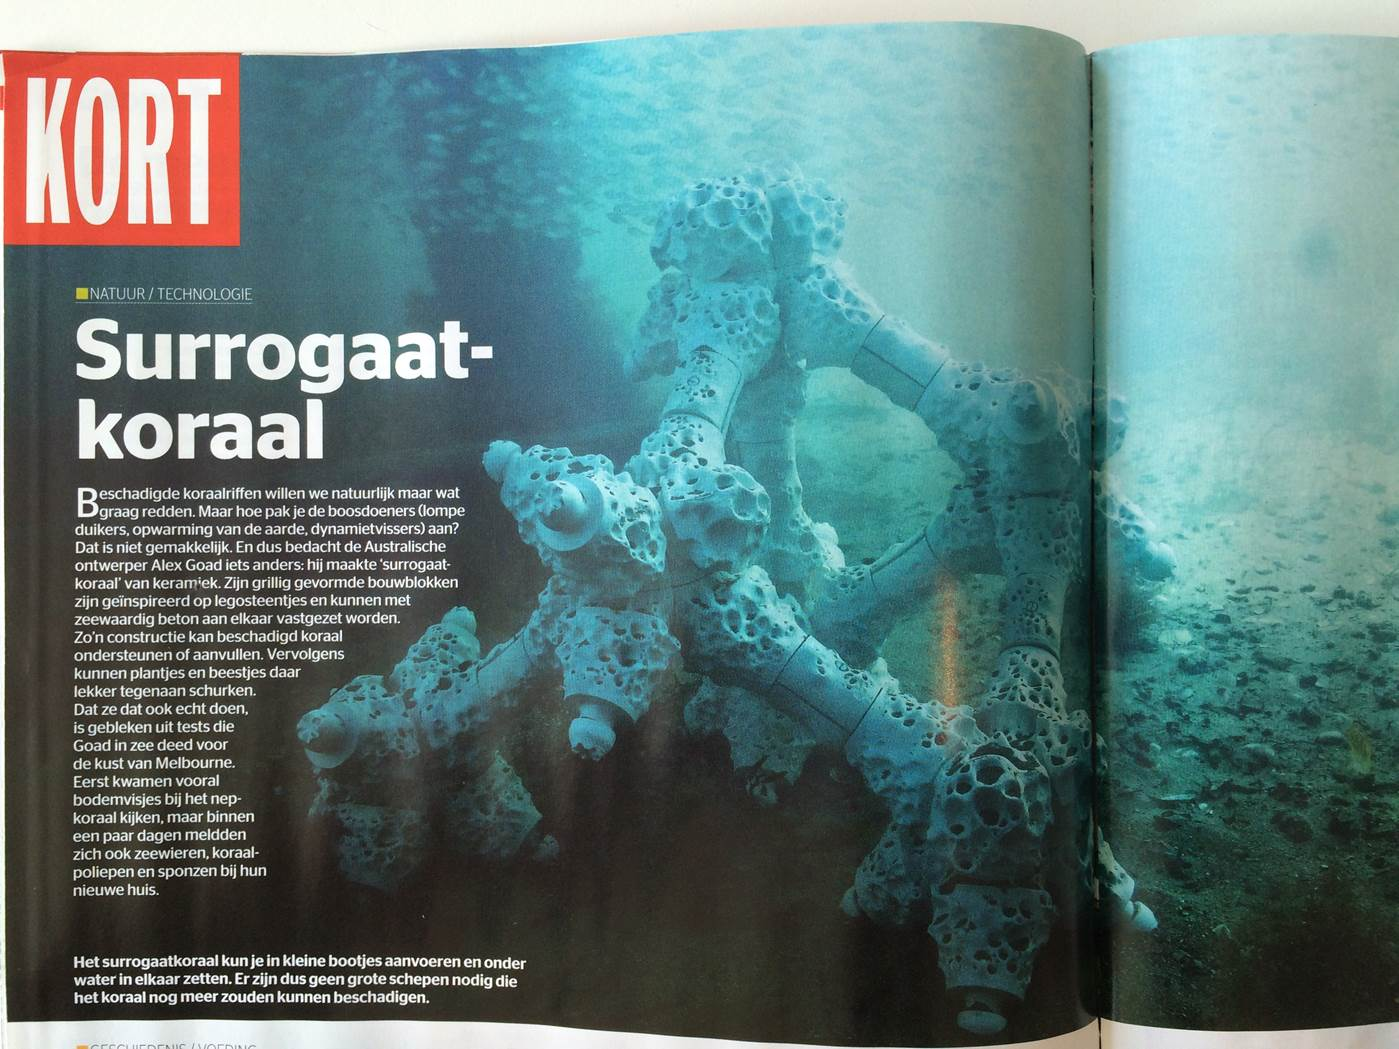 Printed in Quest Magazine - Holland